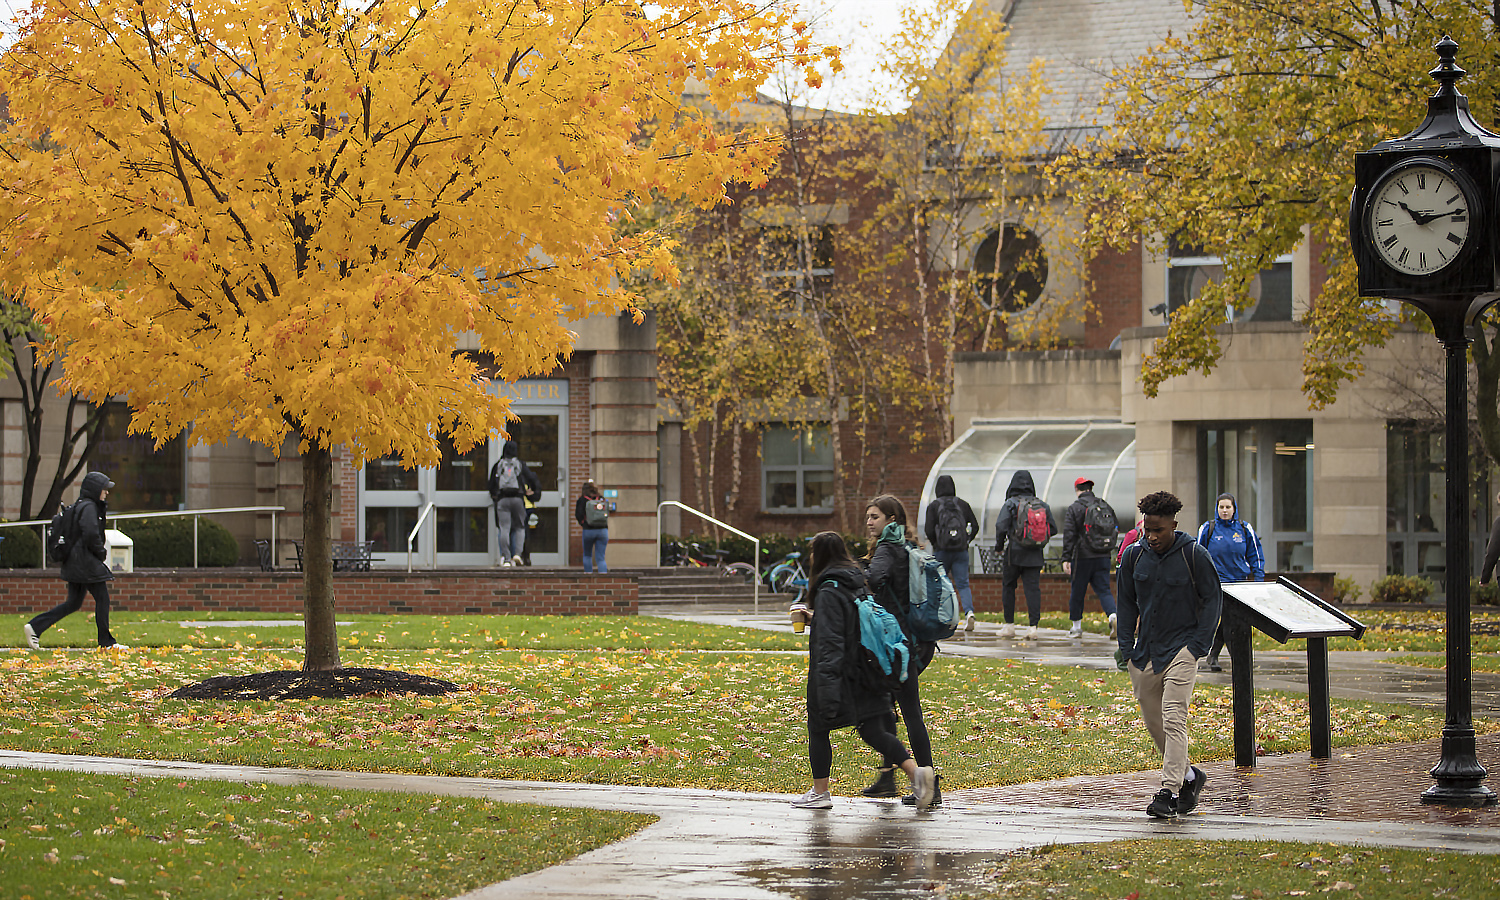 Students make their way to class on a rainy fall day.